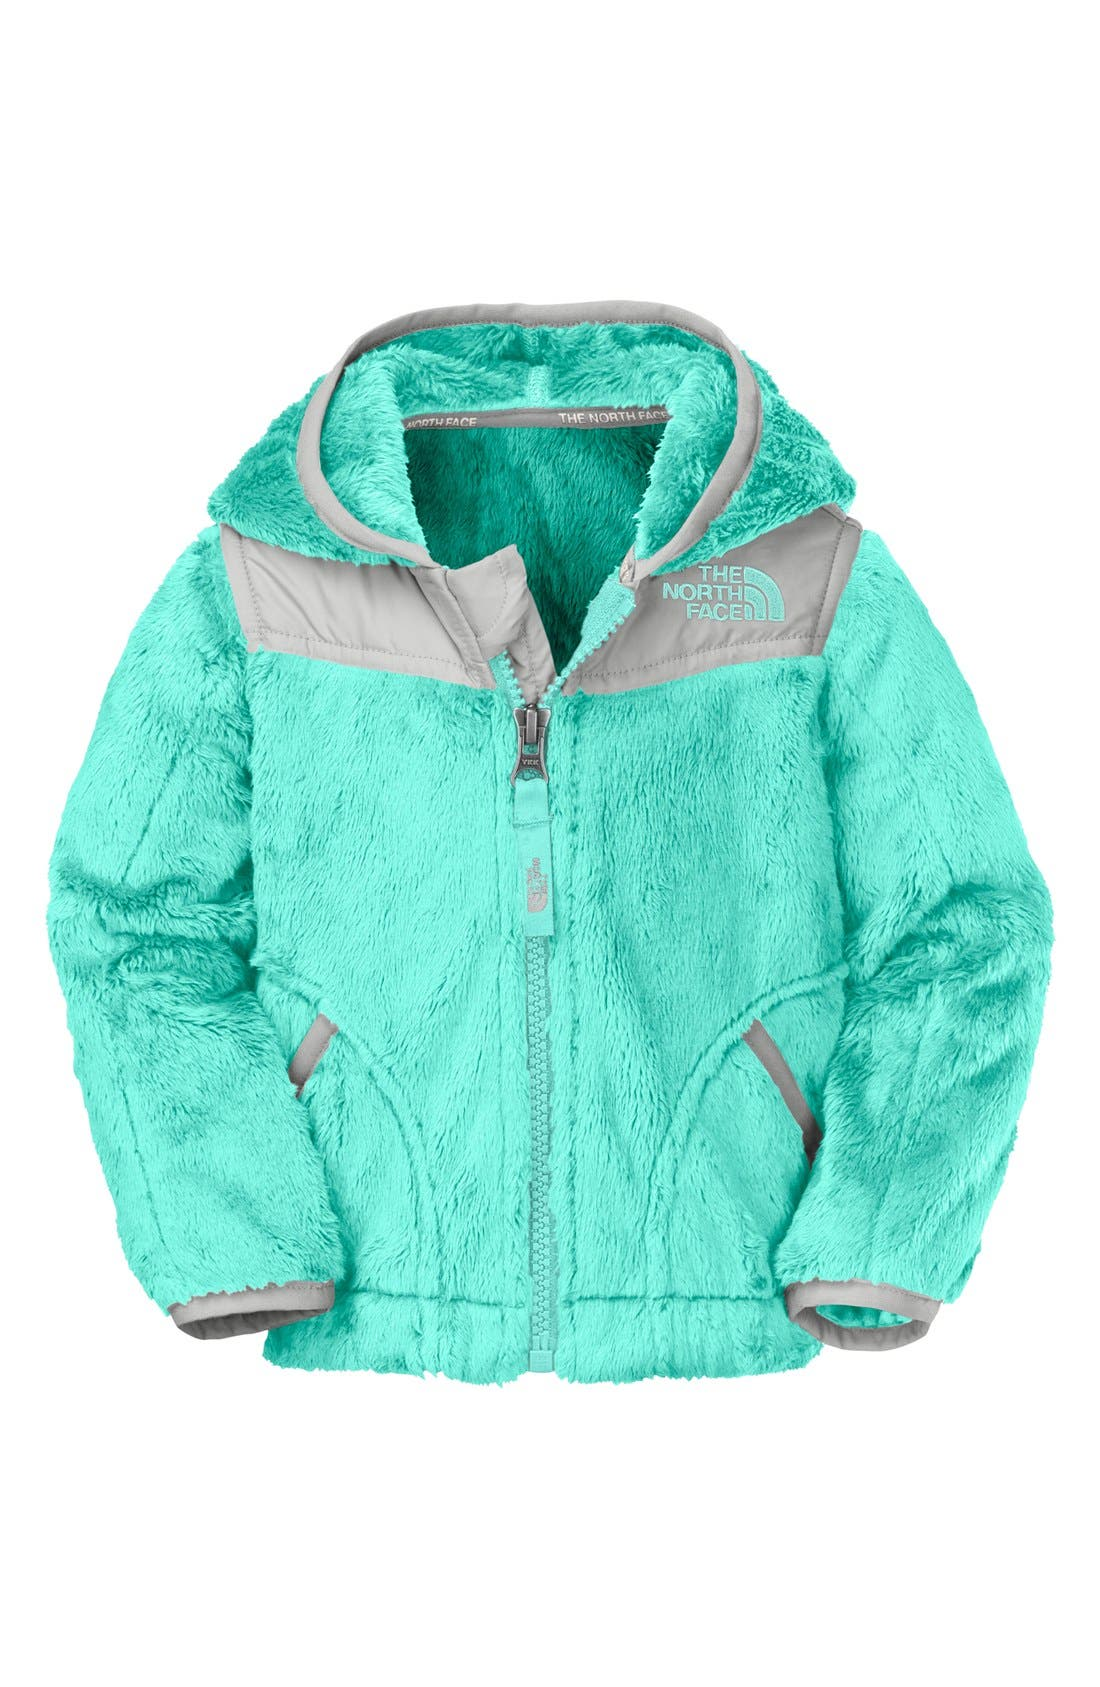 Alternate Image 1 Selected - The North Face 'Oso' Hooded Fleece Jacket (Baby Girls)